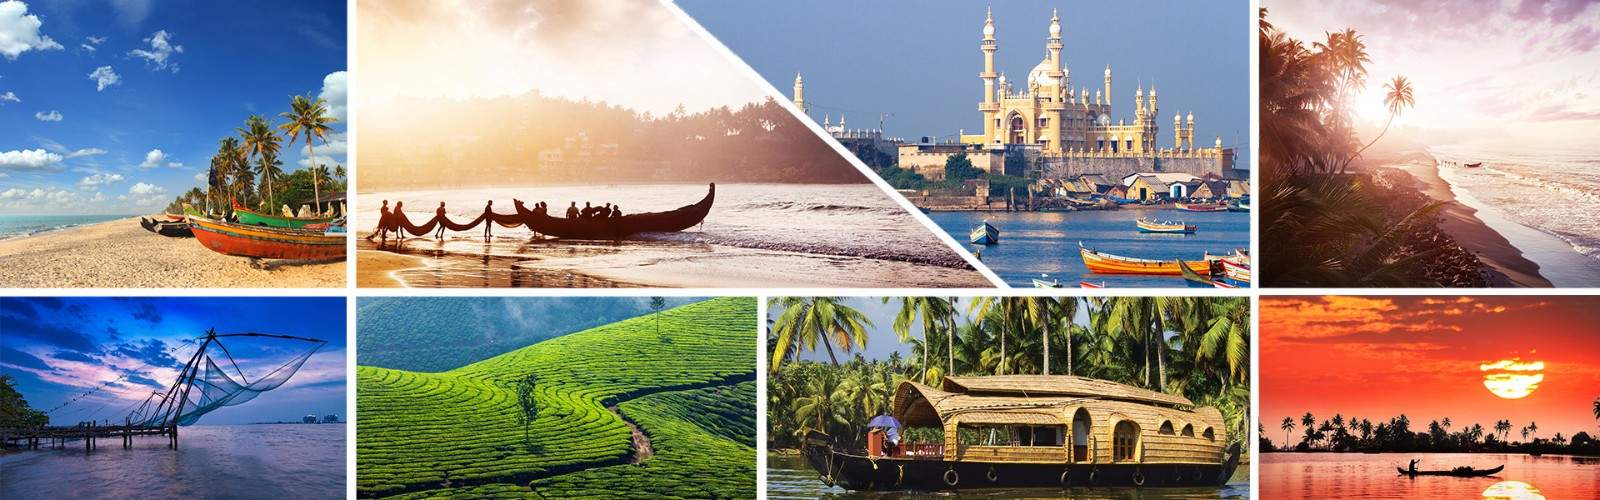 Wendy Wu Tours Kerala Holidays